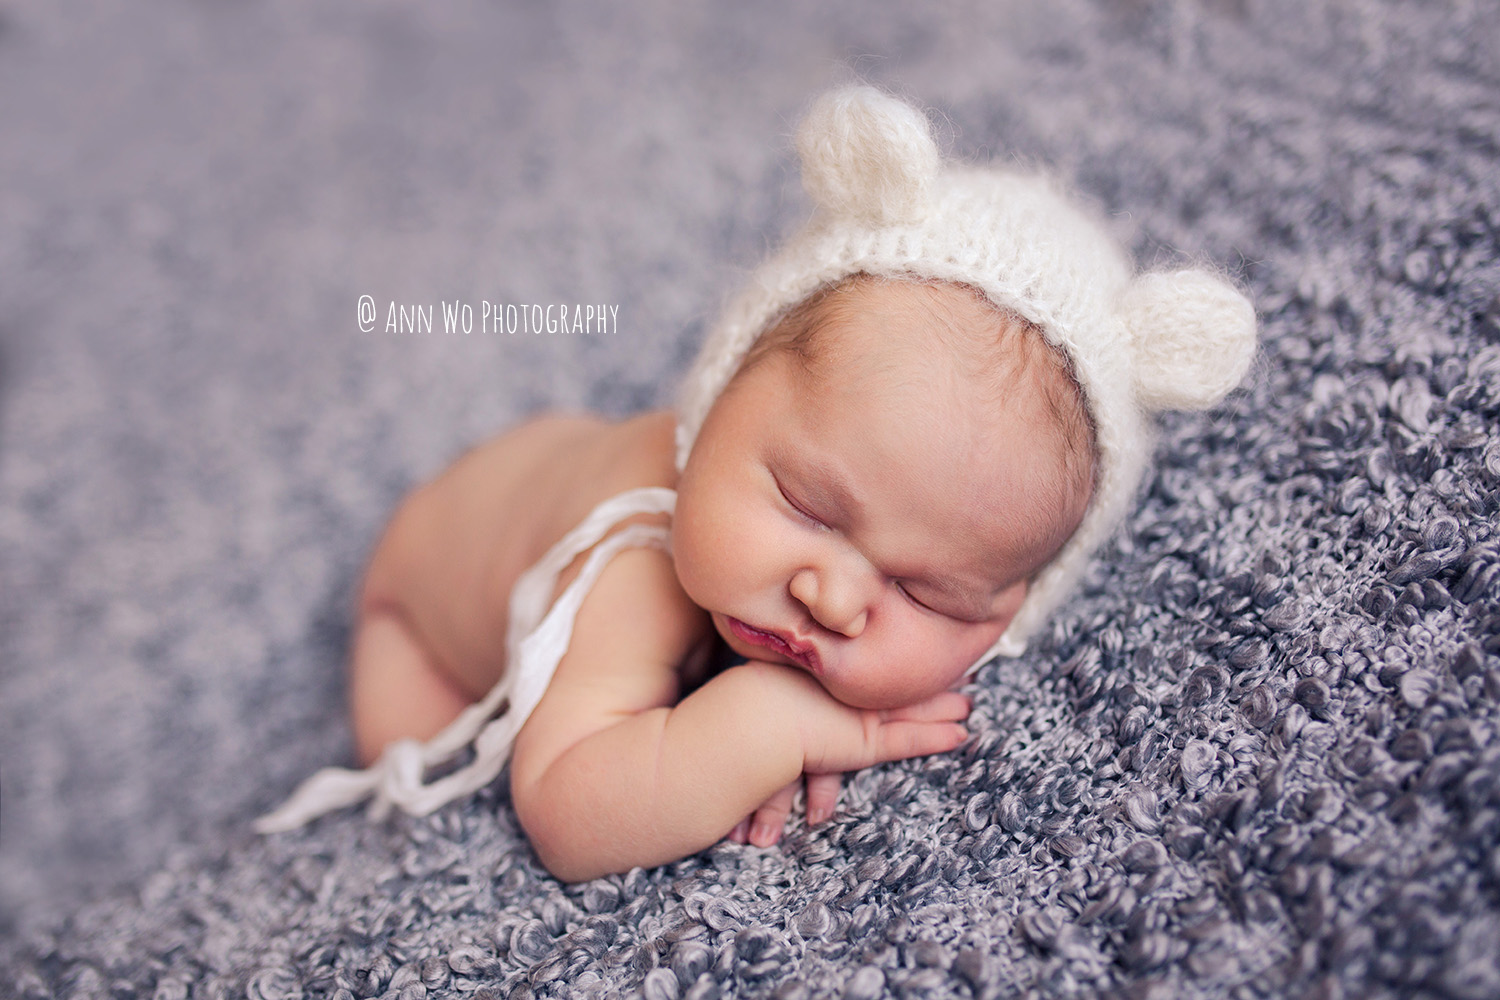 Newborn photographer in London UK Ann Wo thick grey blanket and soft bear bonnet Ann Wo